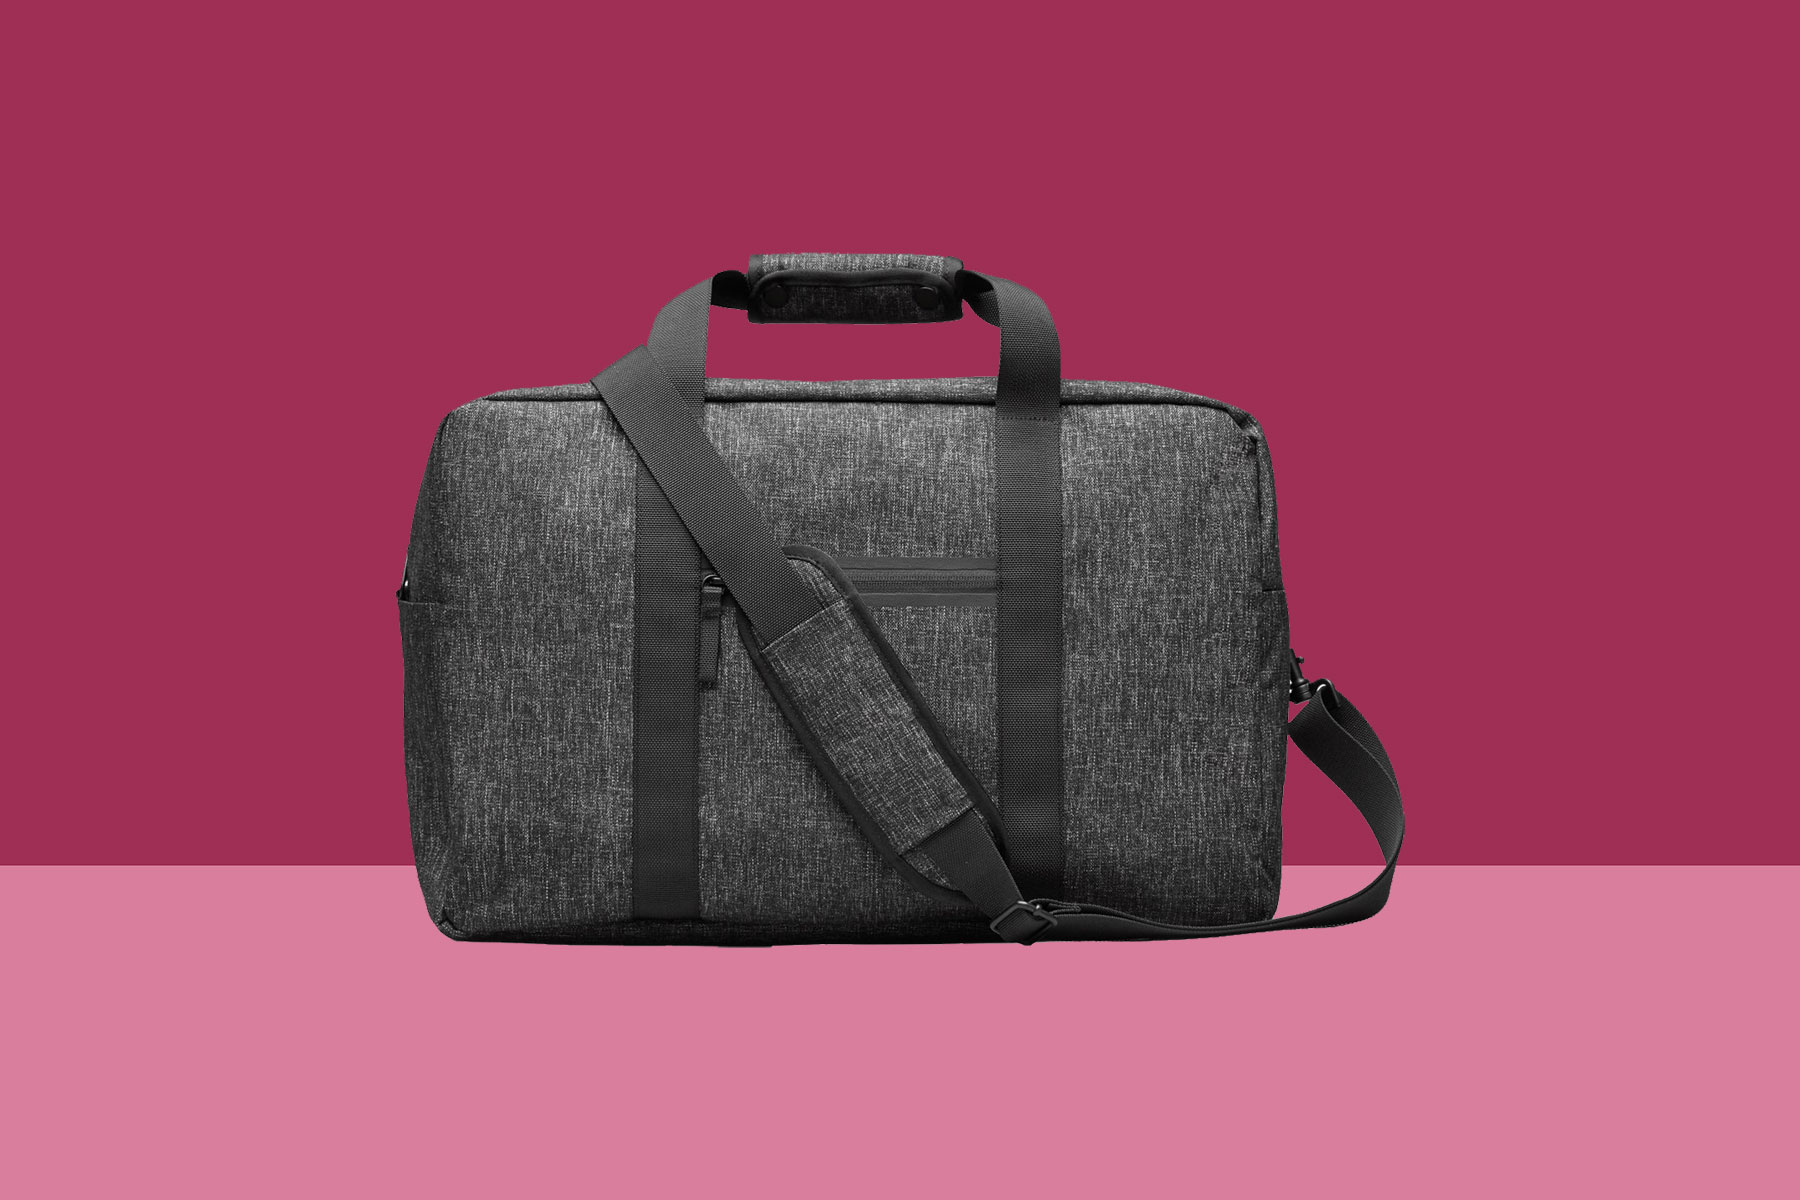 Everlane's The Nylon Weekender Bag